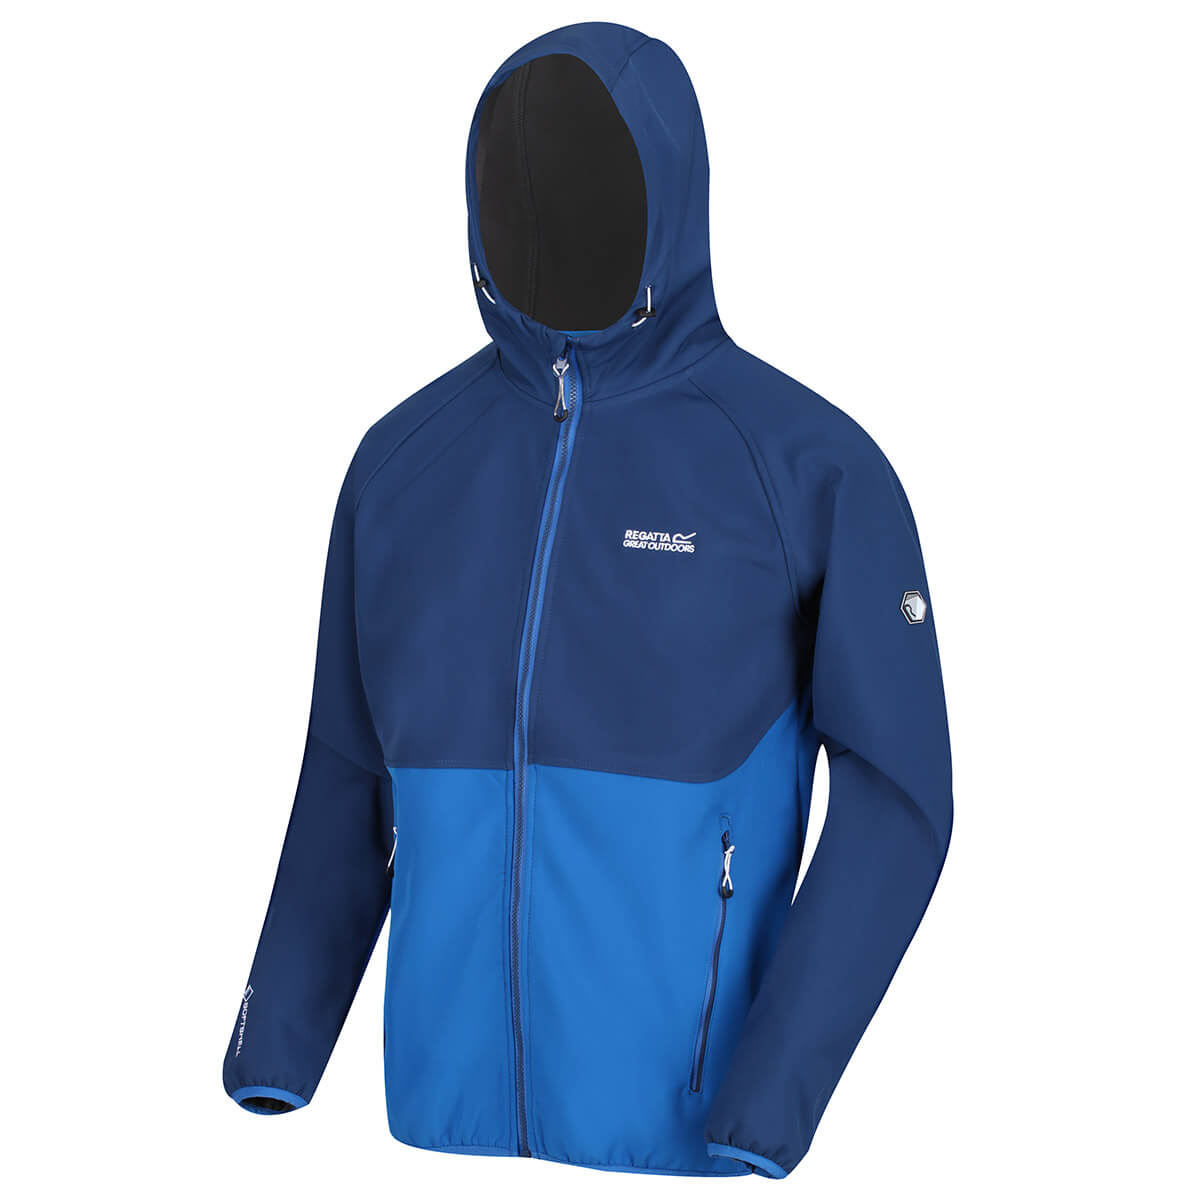 Regatta-Mens-Arec-II-Softshell-Waterproof-Stretch-Hooded-Jacket-68-OFF-RRP thumbnail 27